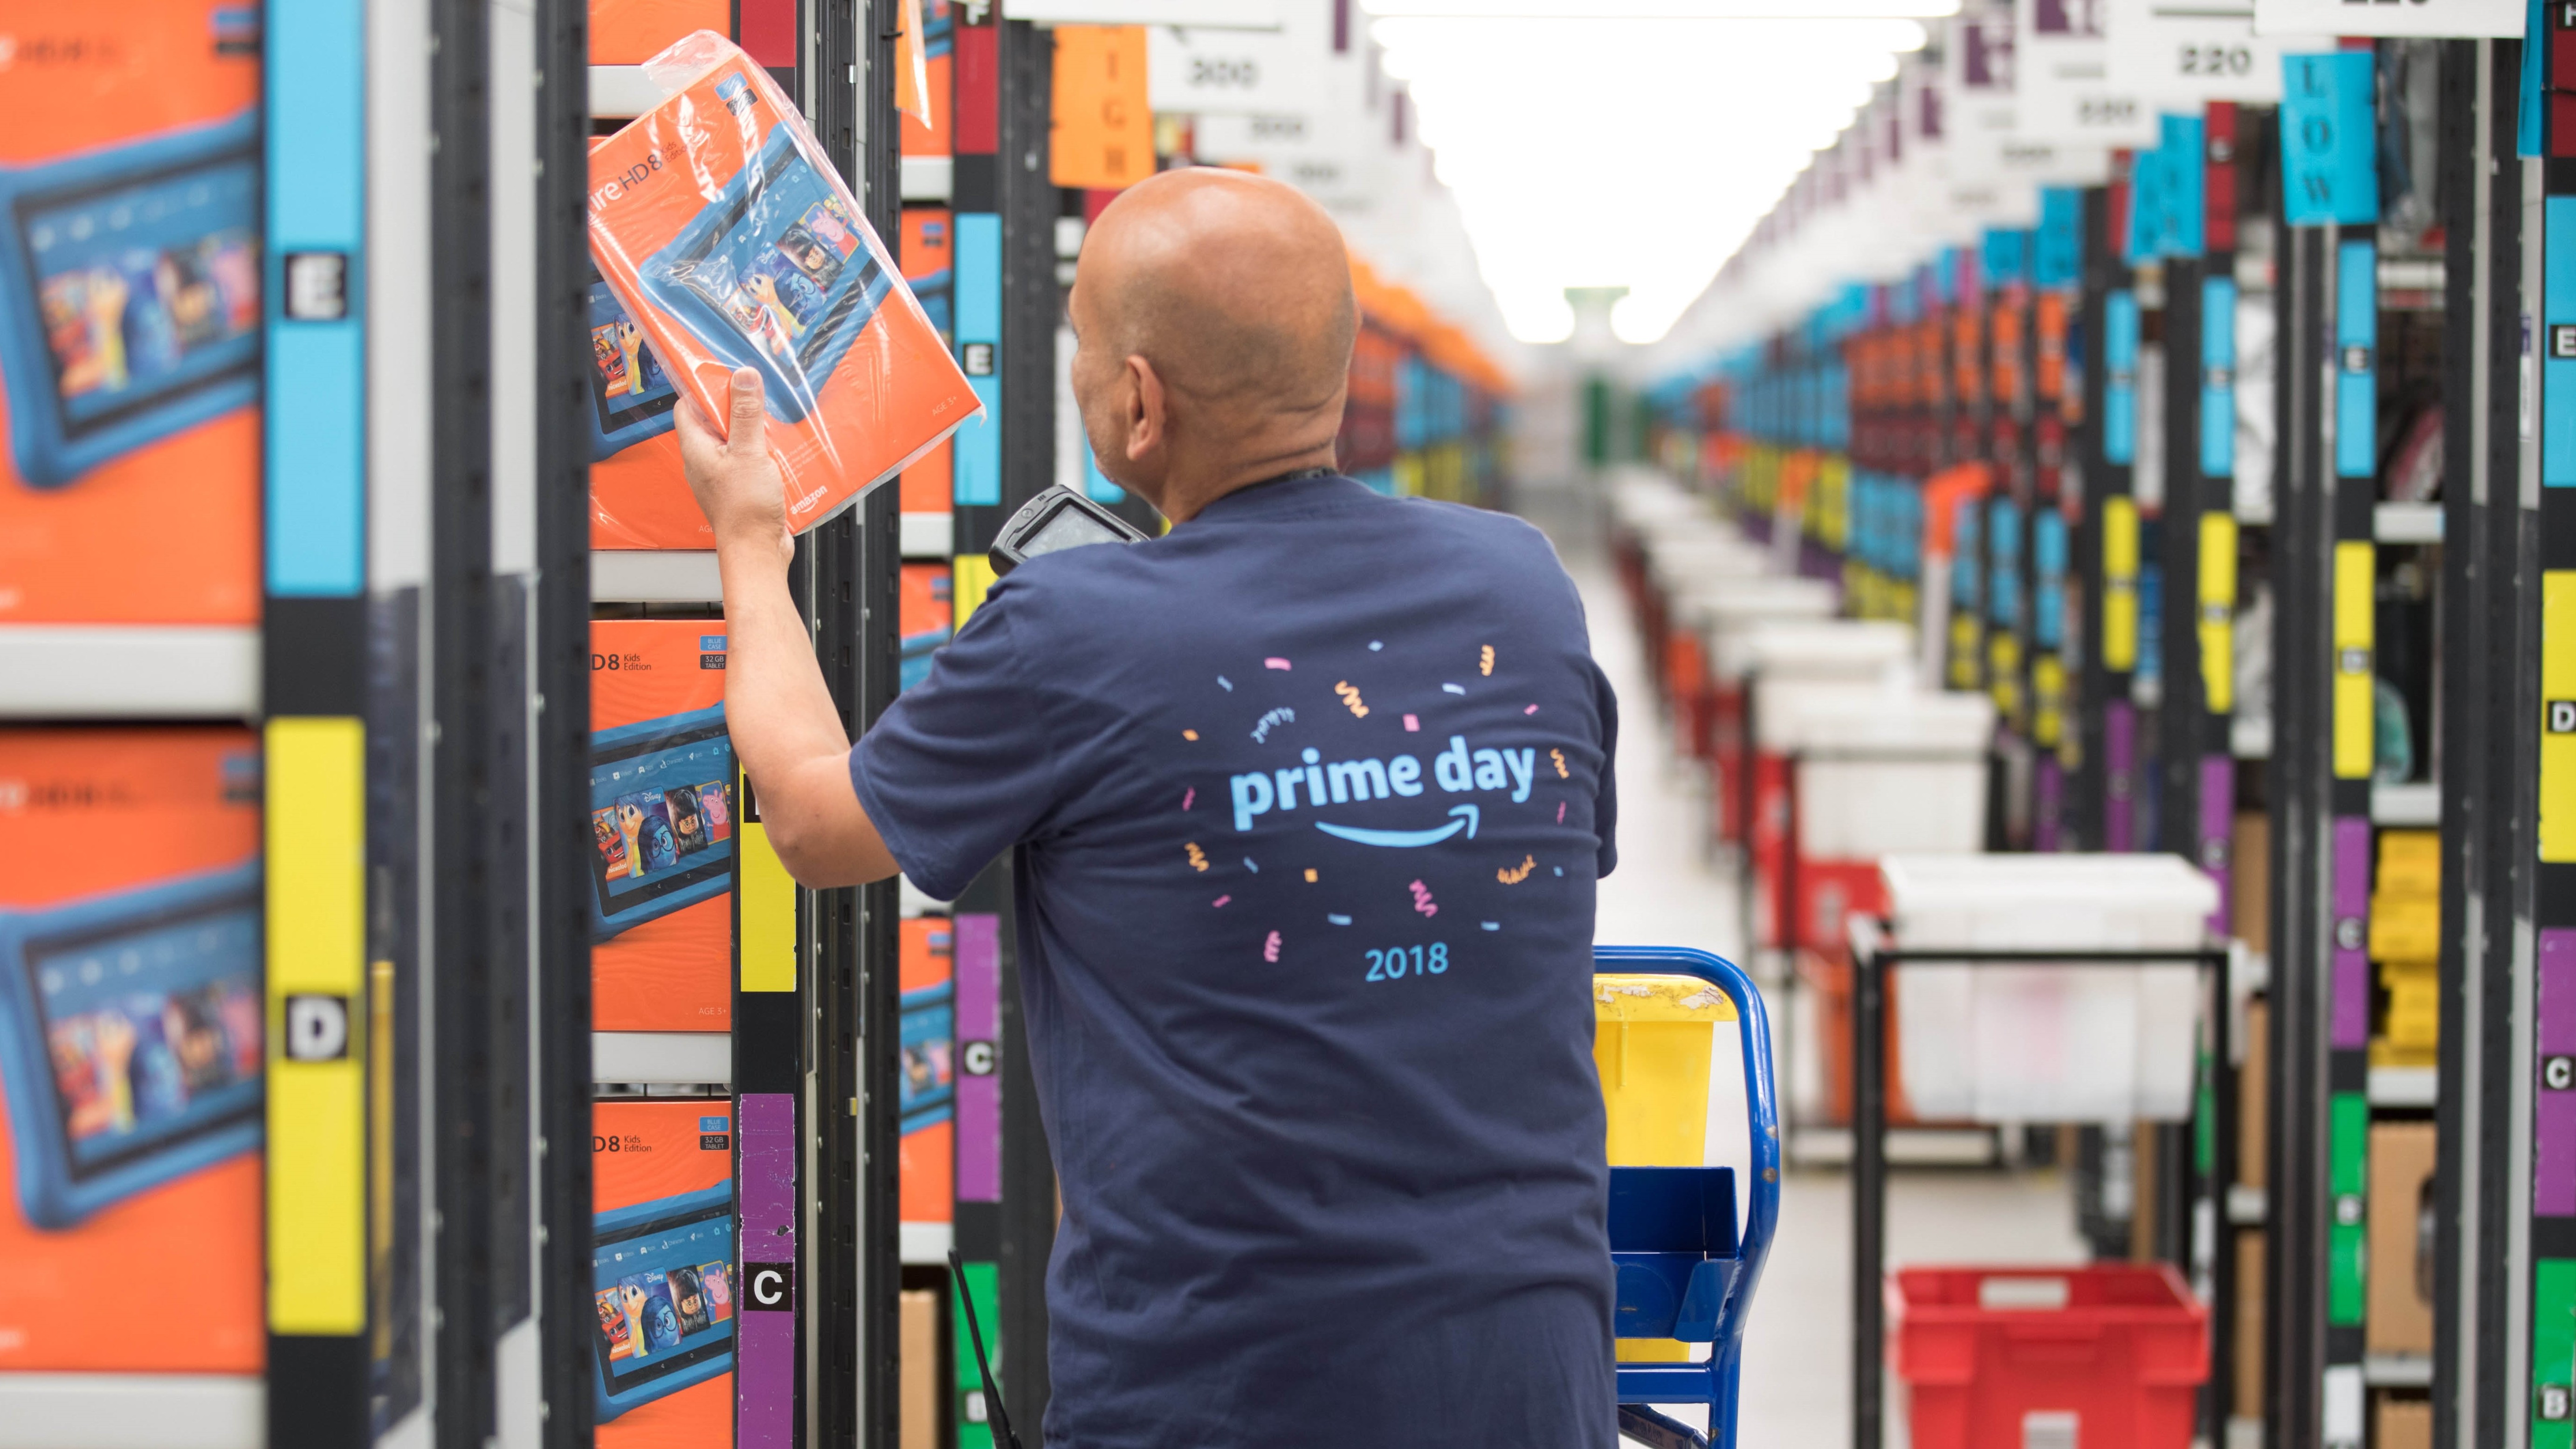 Amazon Prime Day: hits, hype zDeRXMxKteqhAh7WnG3L